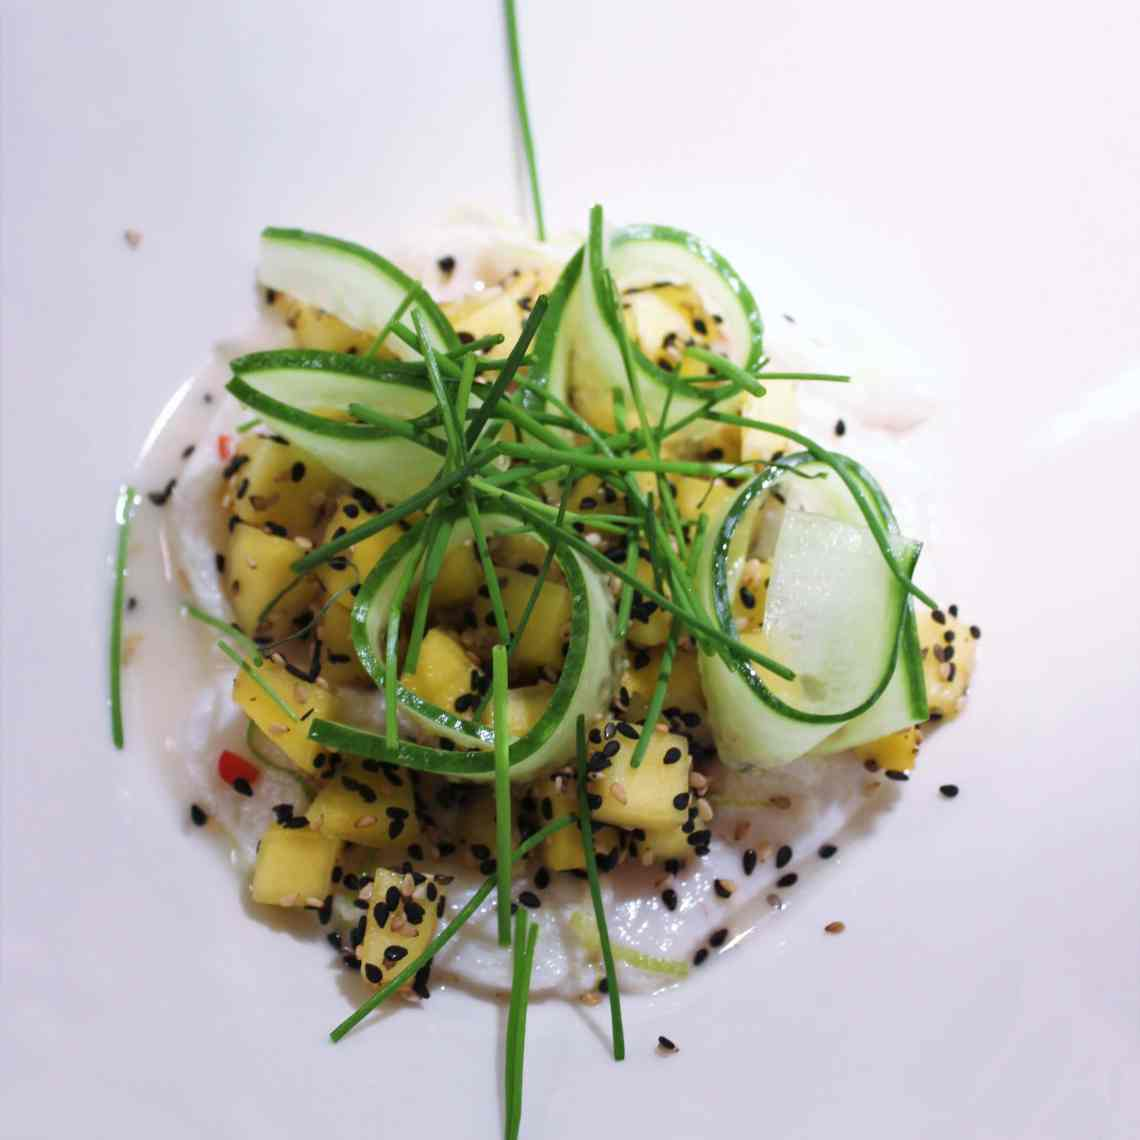 Ceviche - lime og æble marineret torsk med mango og agurke crudité. Lækker forret til nytår og andre fester – find opskriften, gratis download, print og inspiration til årets gang på danishthings.com